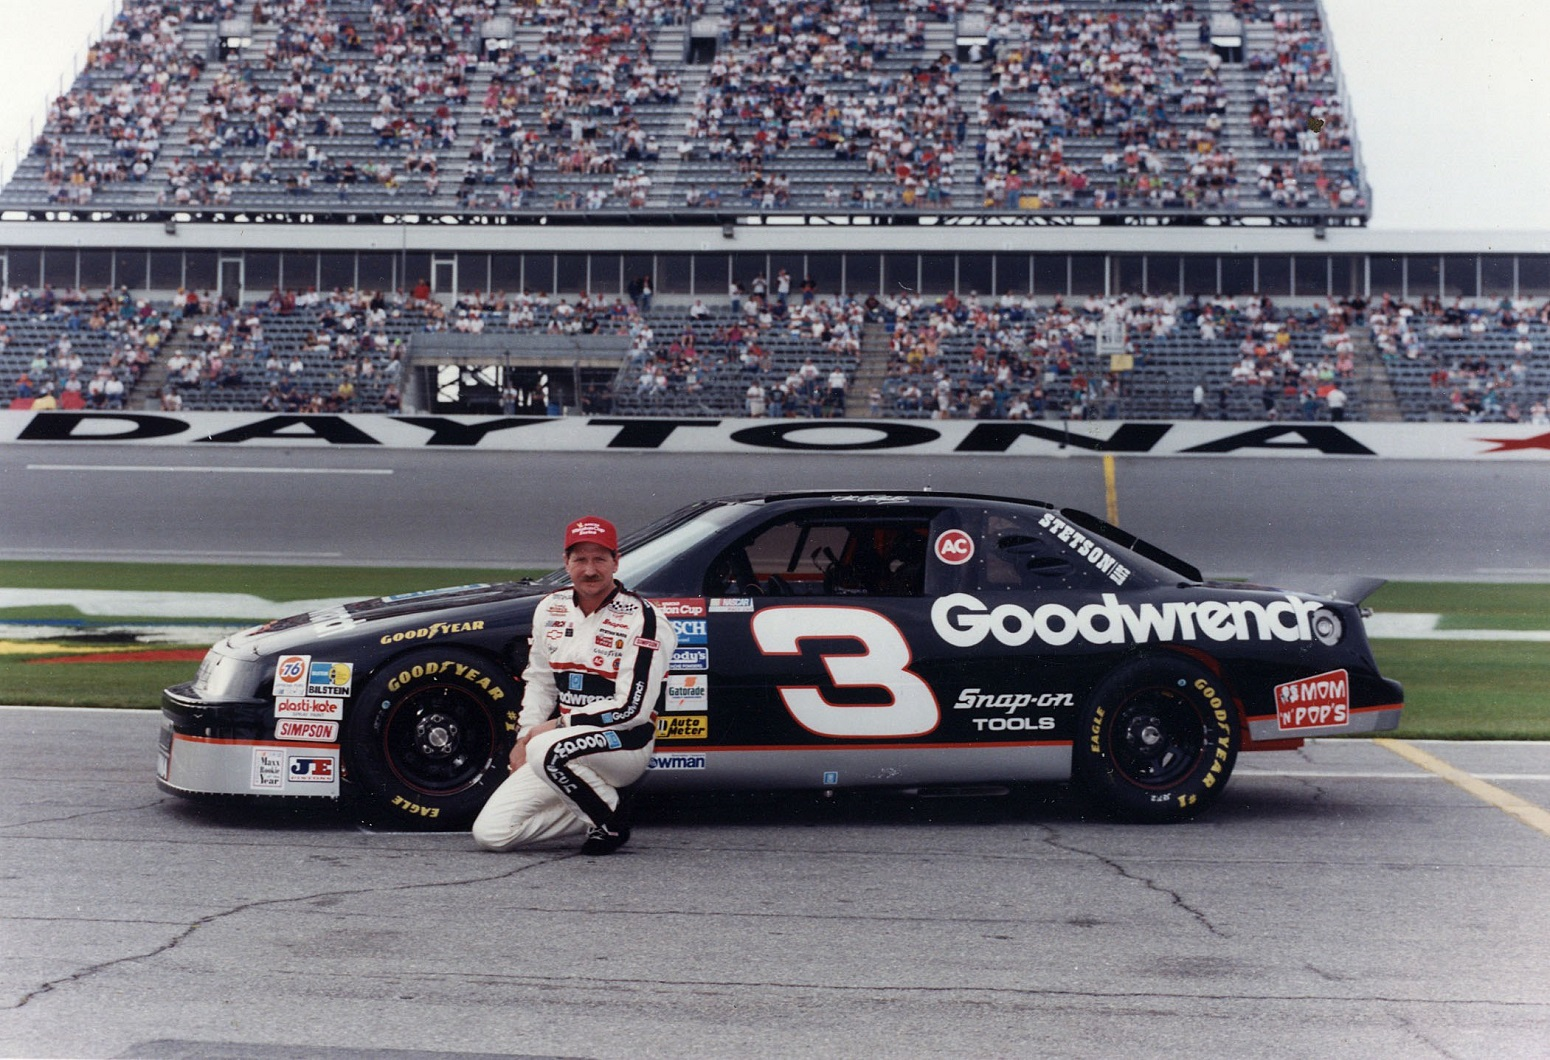 Dale Earnhardt Sr. mom NASCAR honor emotional request